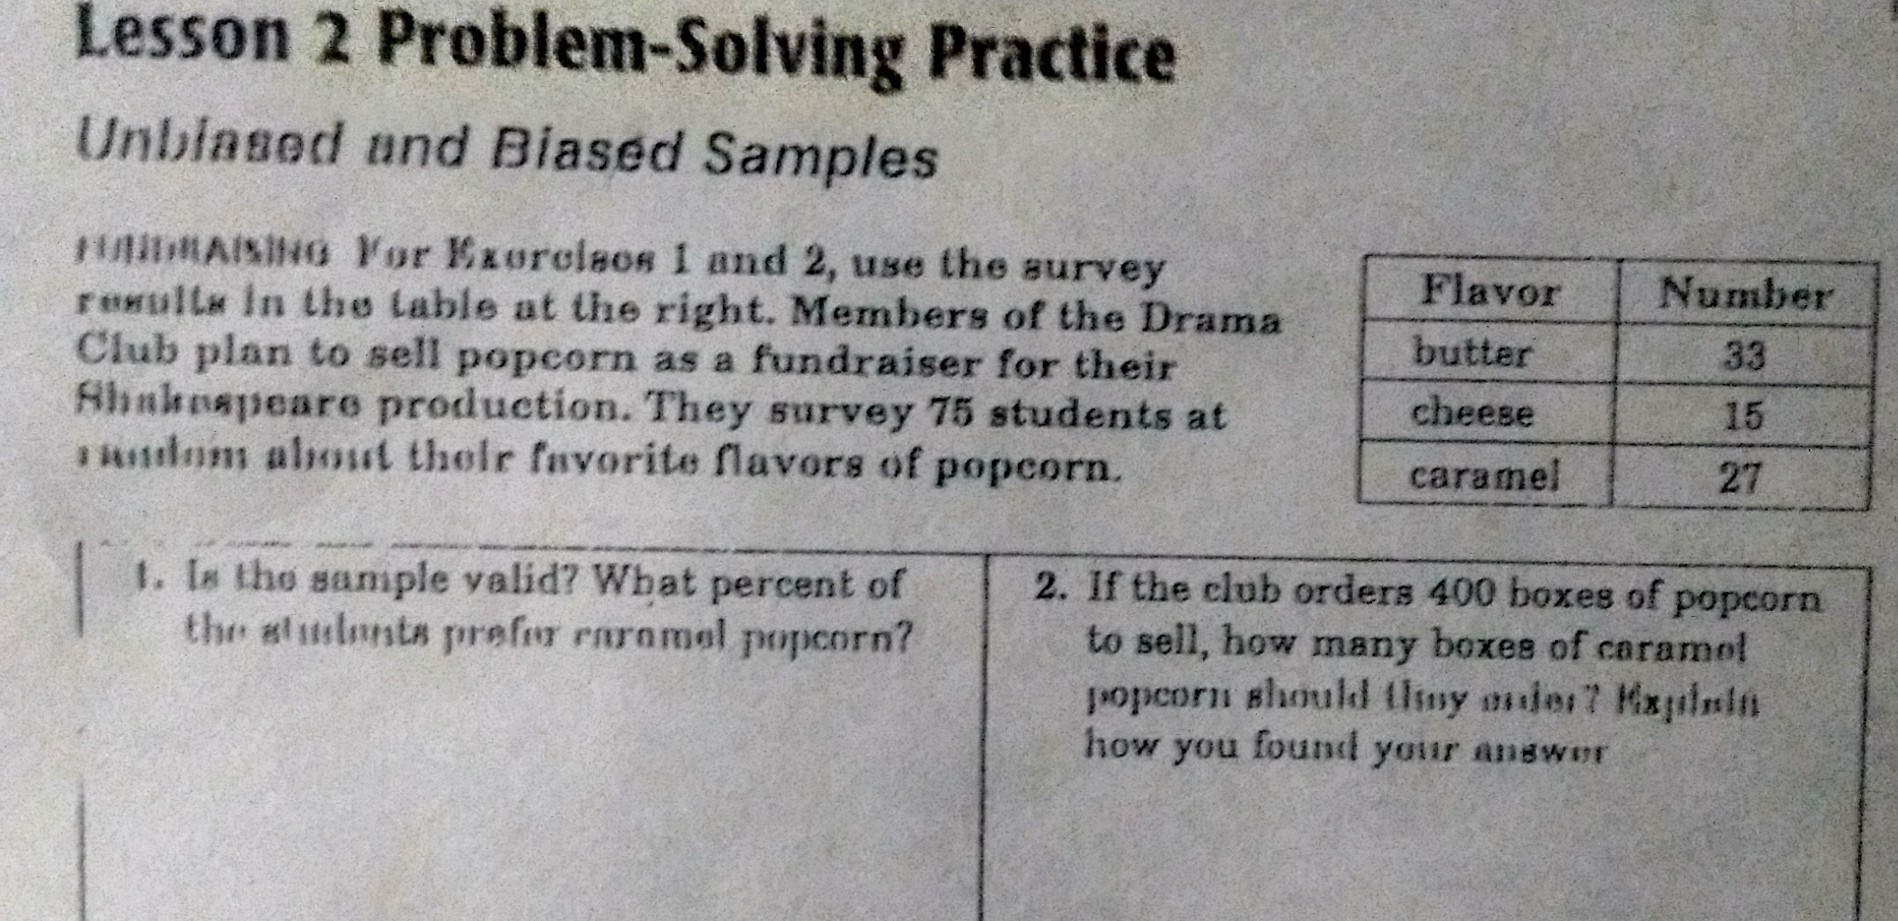 is the sample valid? what percent of students prefer caramel